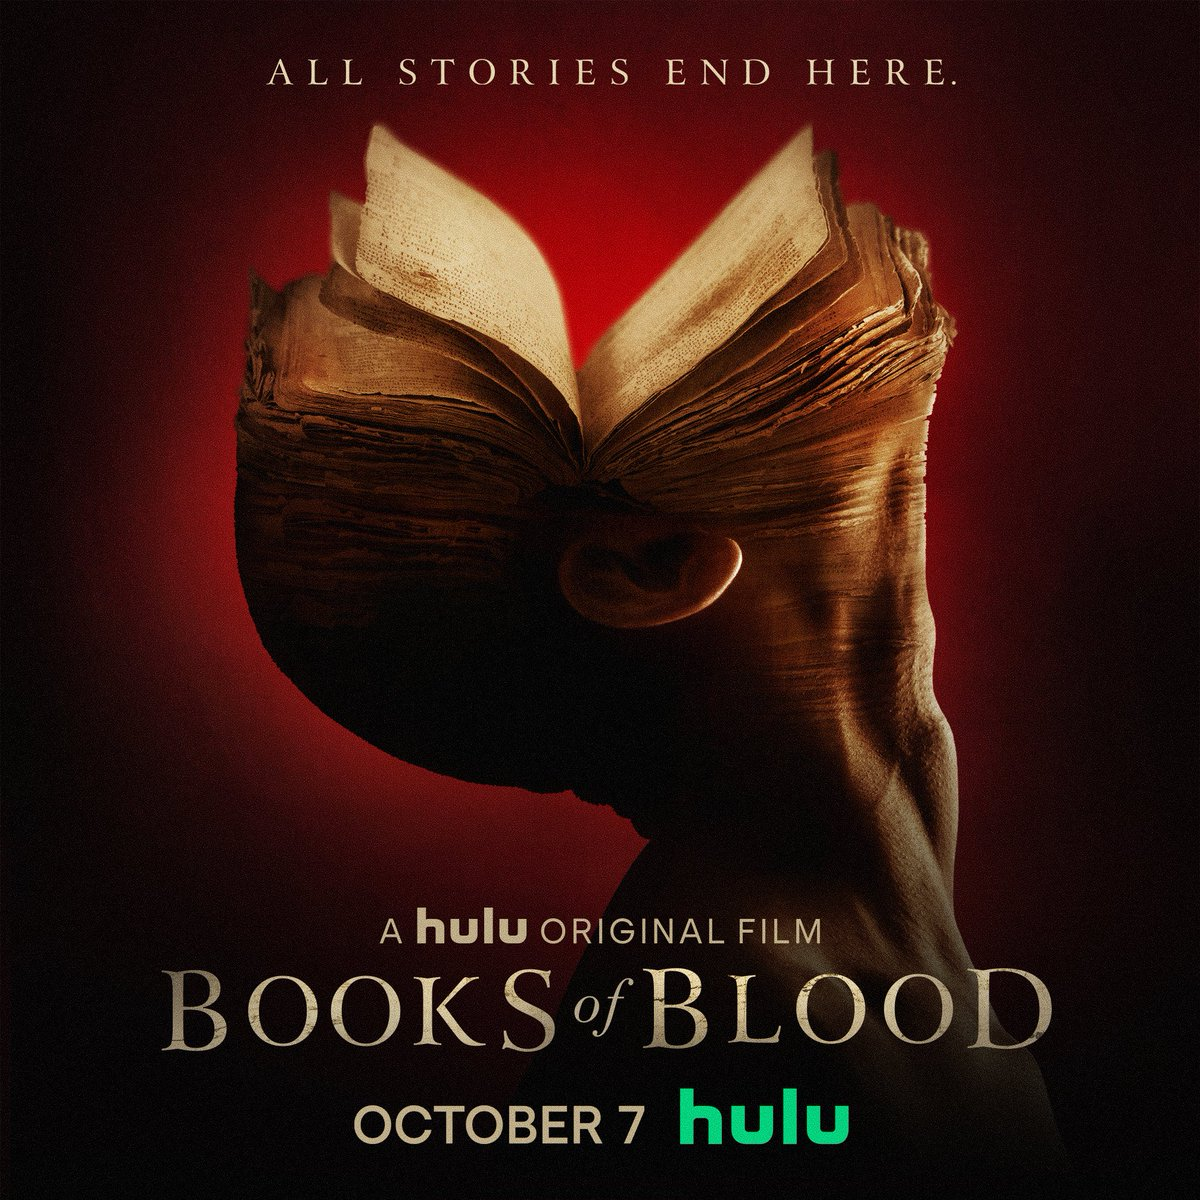 Step into uncharted and forbidden territory. Based on Clive Barker's acclaimed and influential horror anthology book series, #BooksOfBlood, a Hulu Original film premieres on October 7 on Hulu. https://t.co/pMynS6llmN